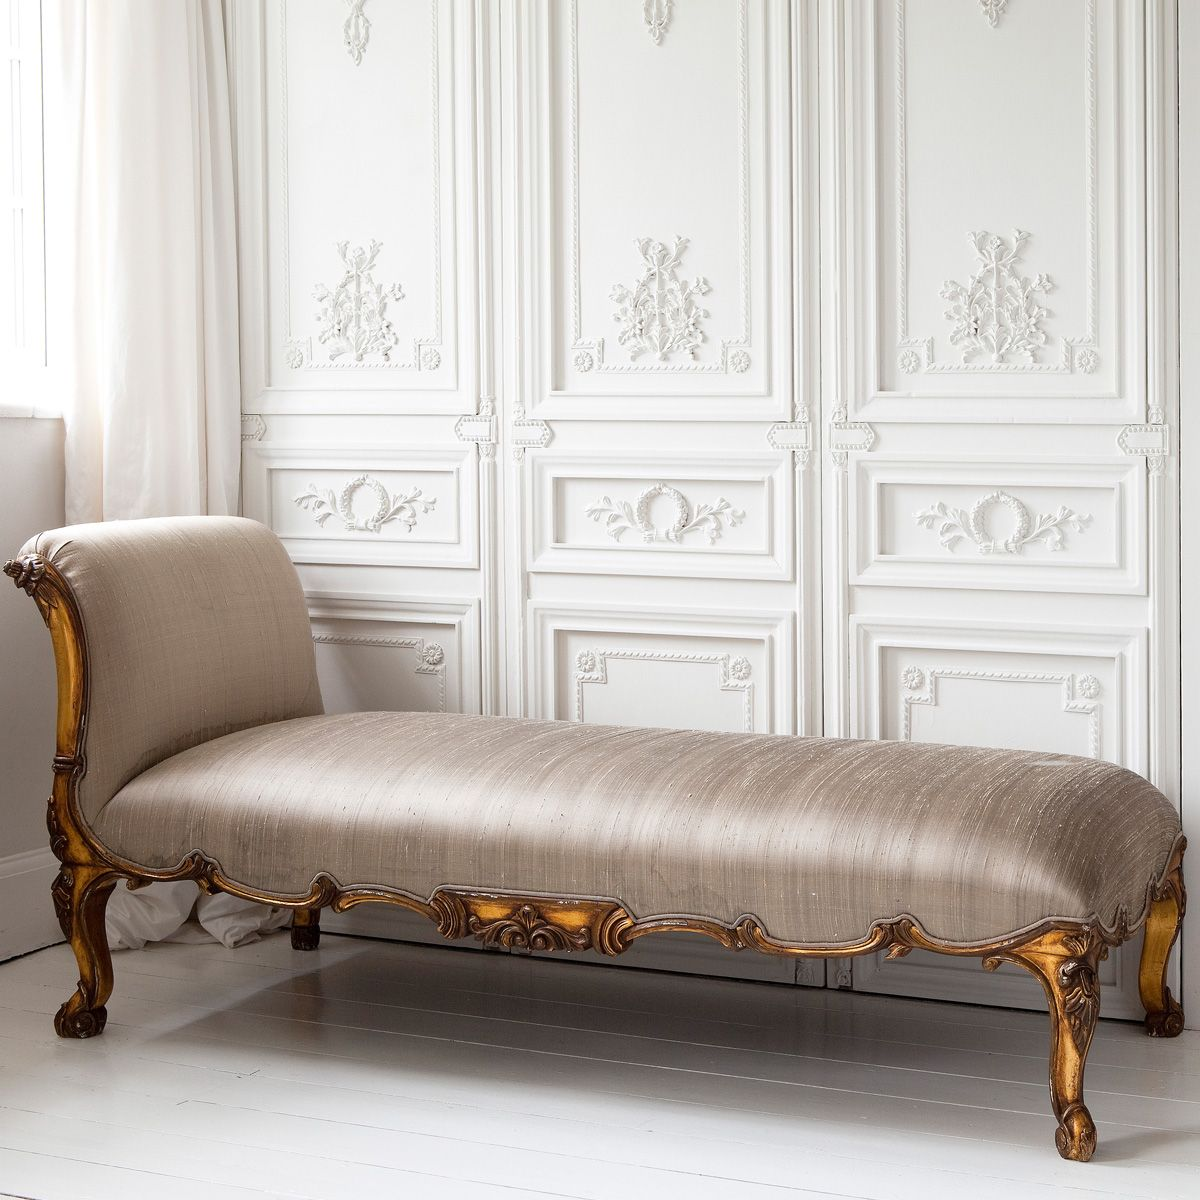 explore french boudoir bedroom french bedrooms and more